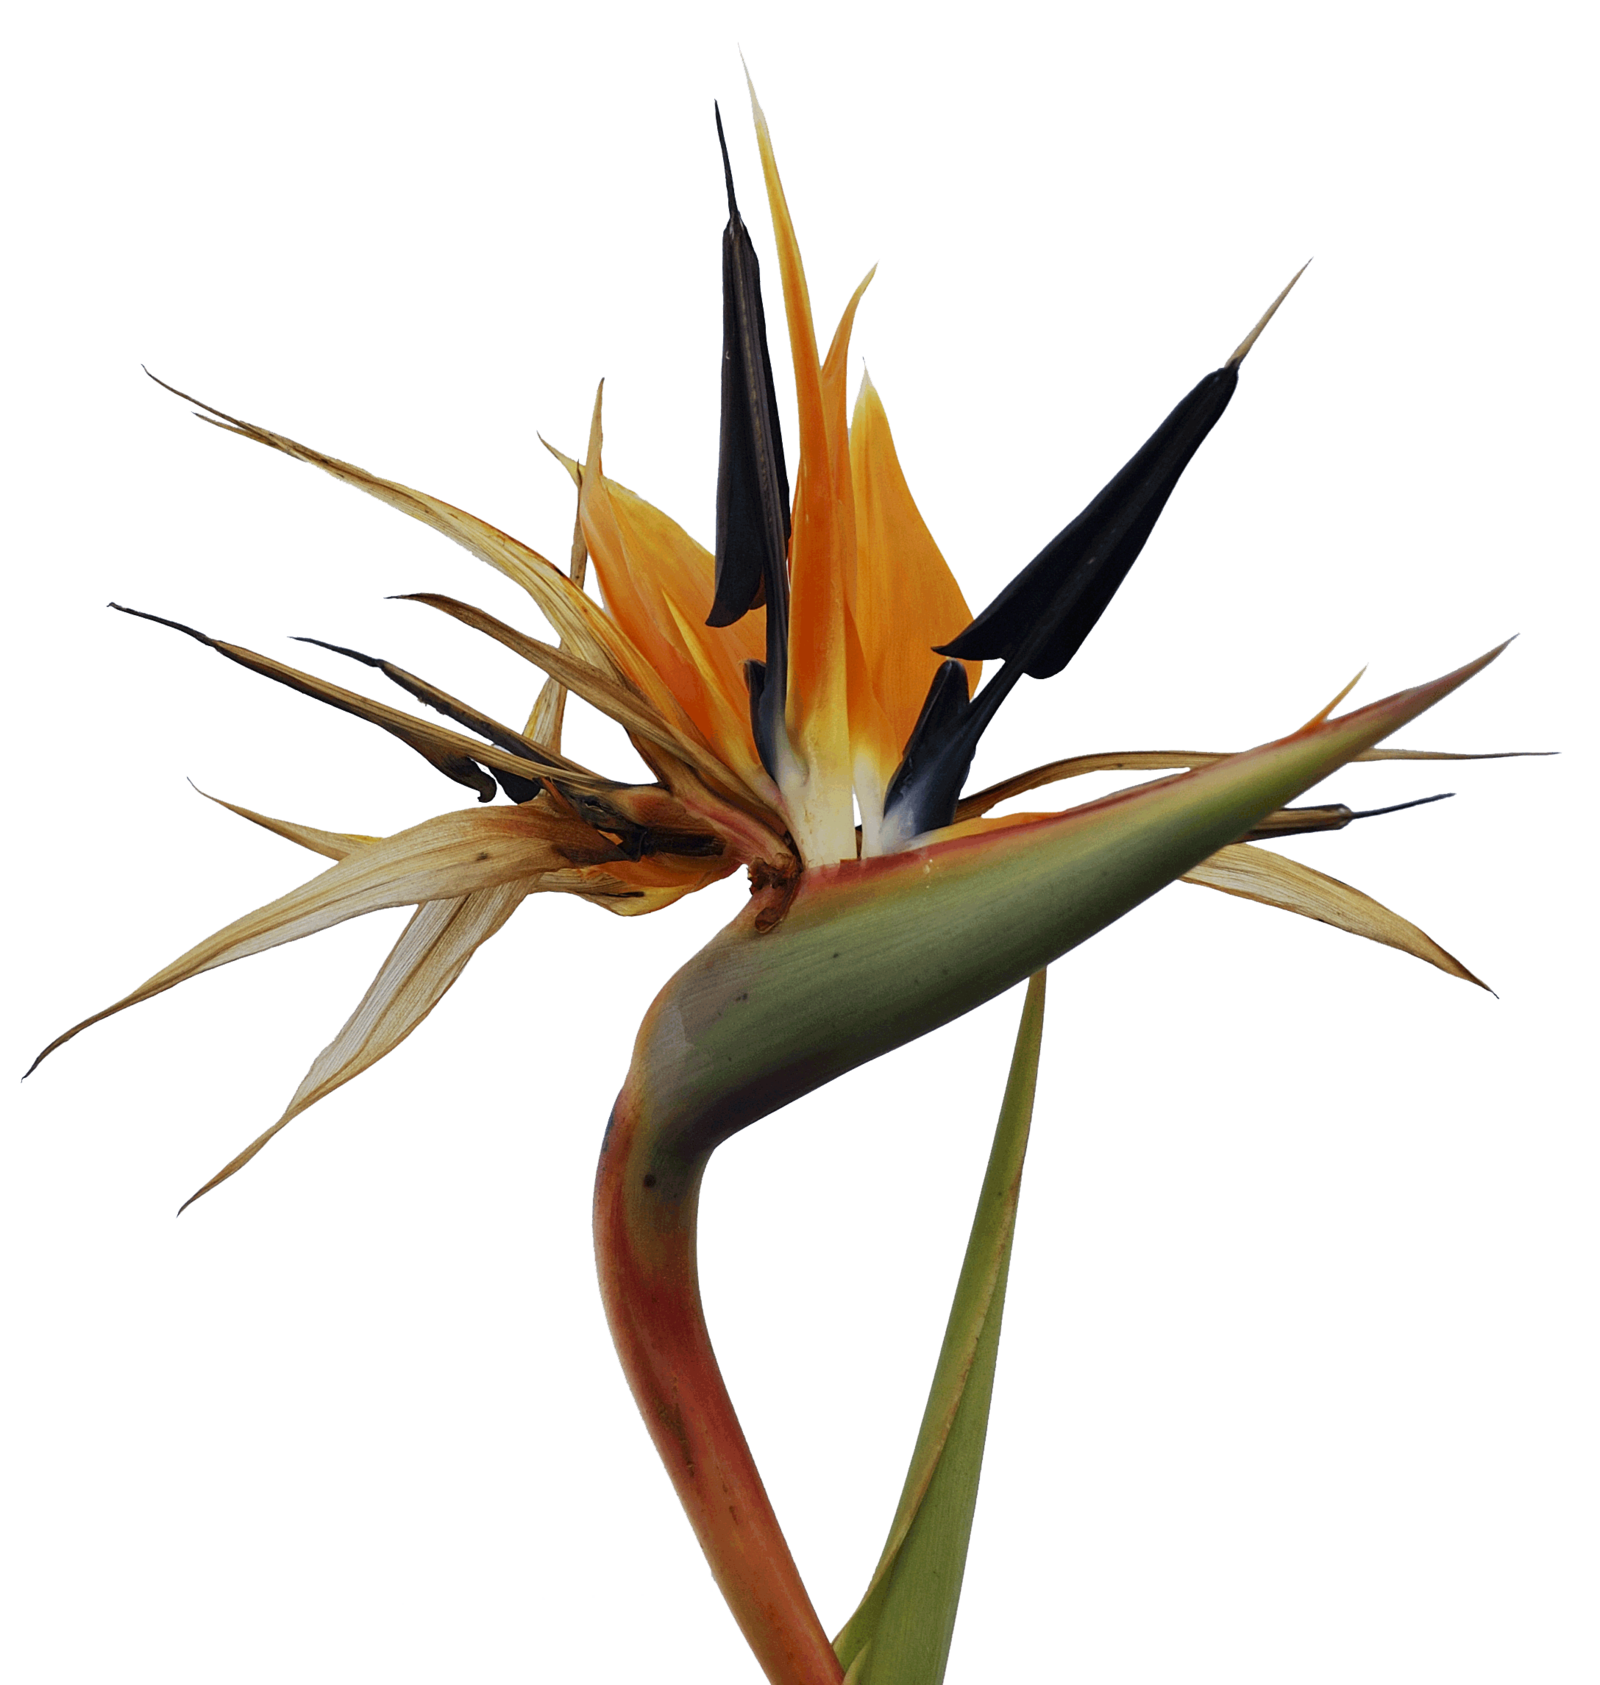 Bird of paradise flower png. Cruise black and white